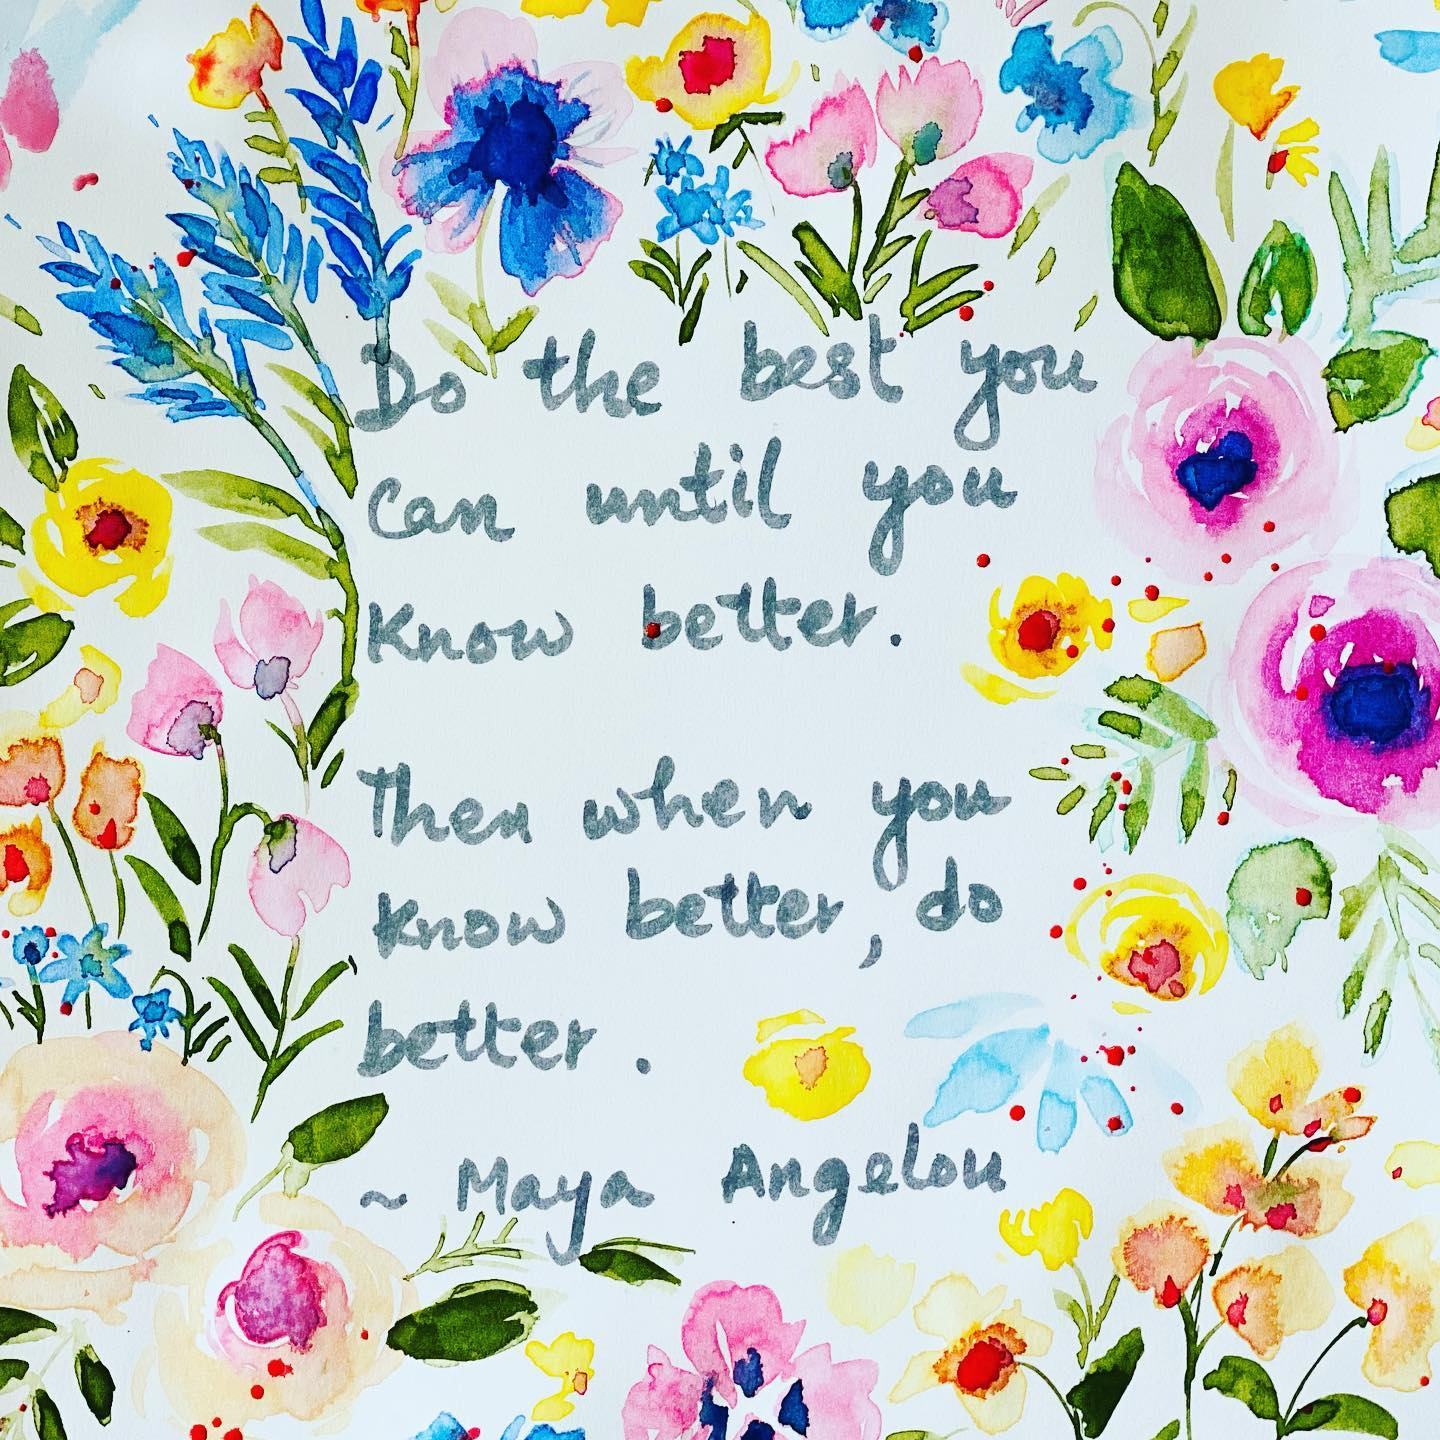 Do the best until you know better. Then when you know better, do better. ~ Maya Angelou